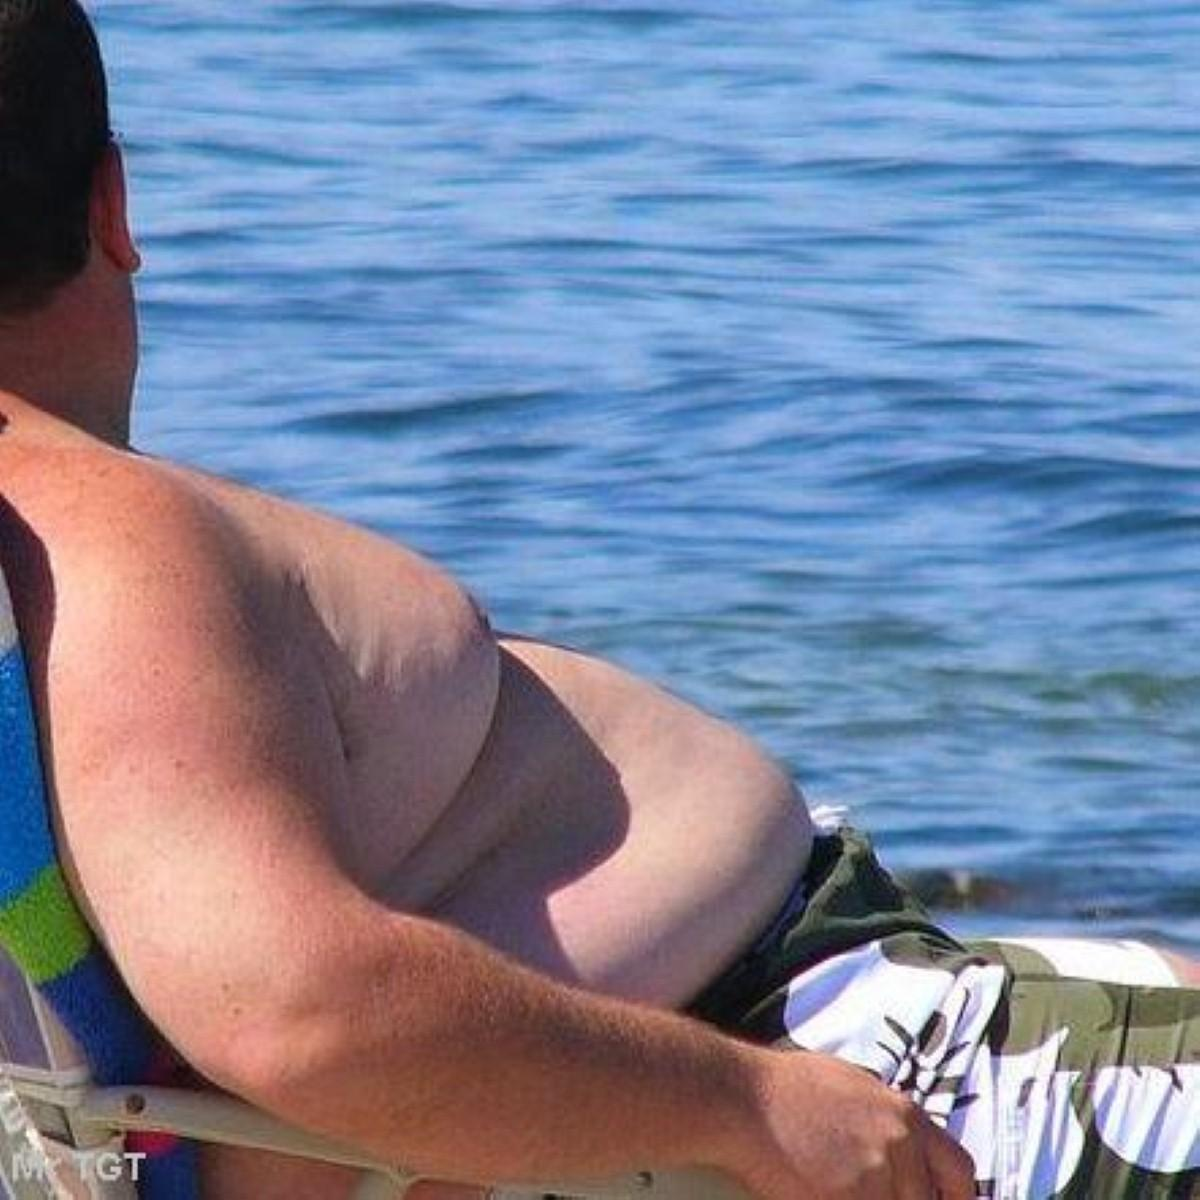 Duration of obesity 'linked to mortality'